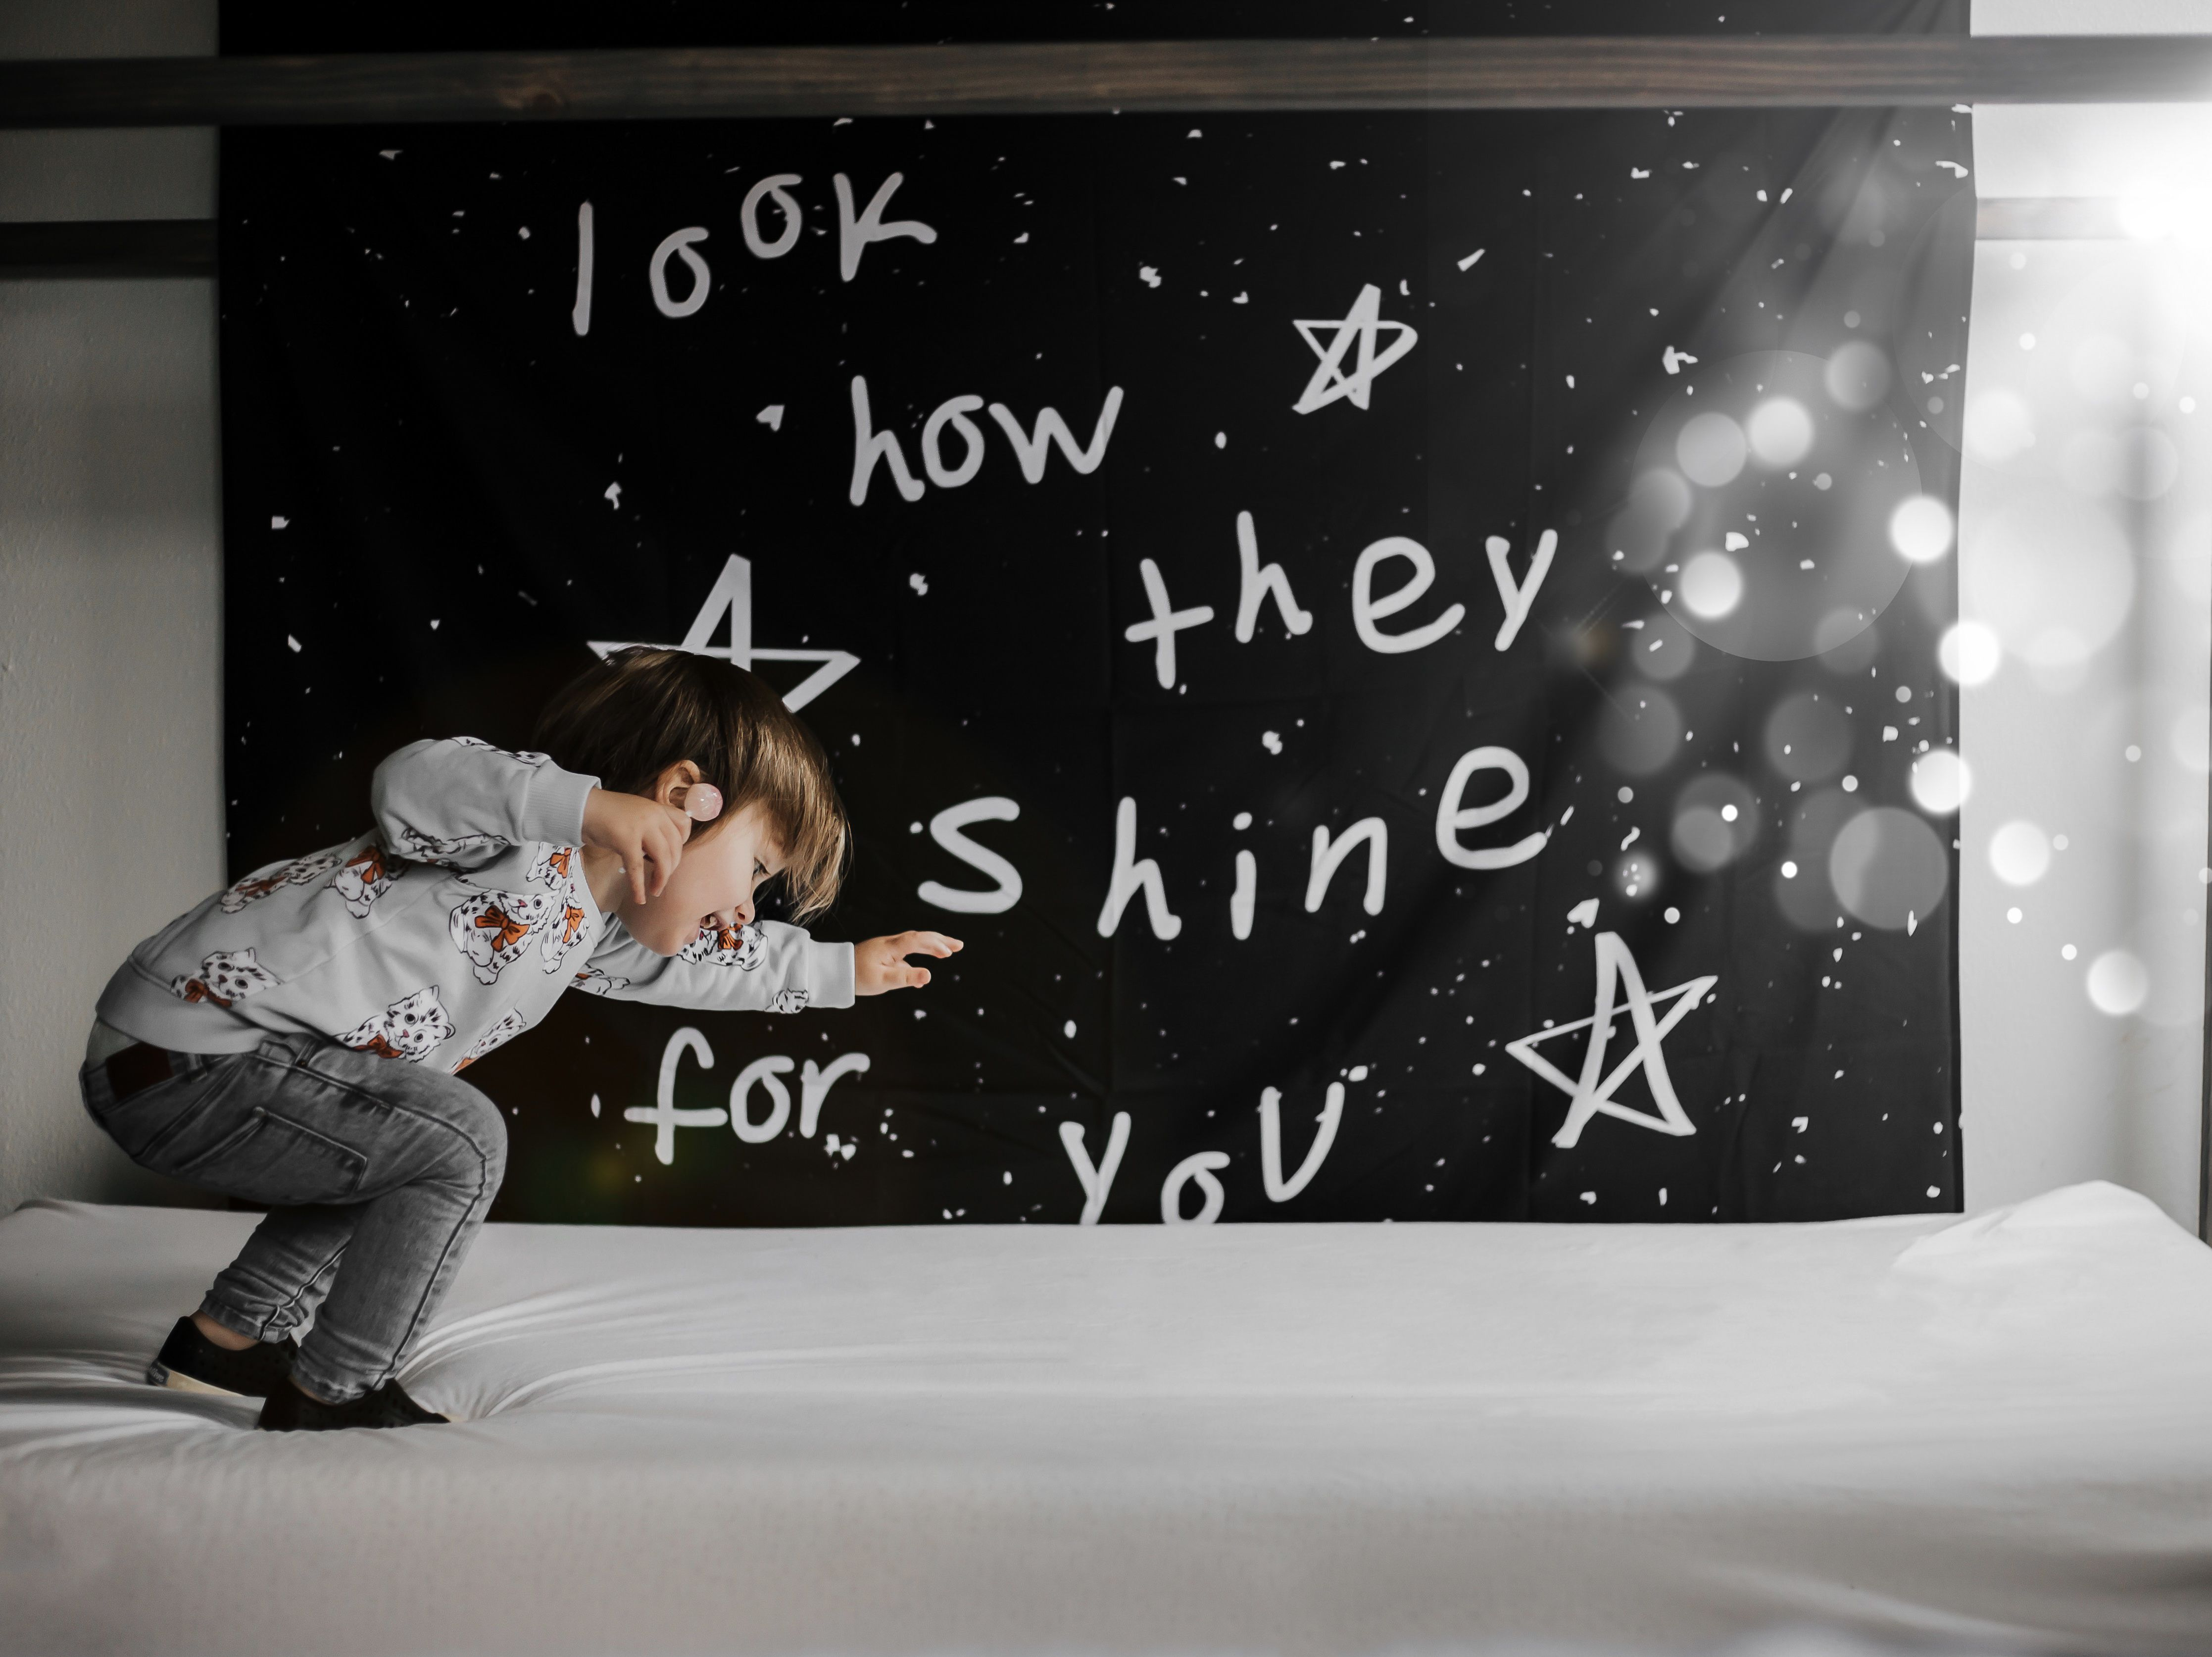 Look How they shine for you images